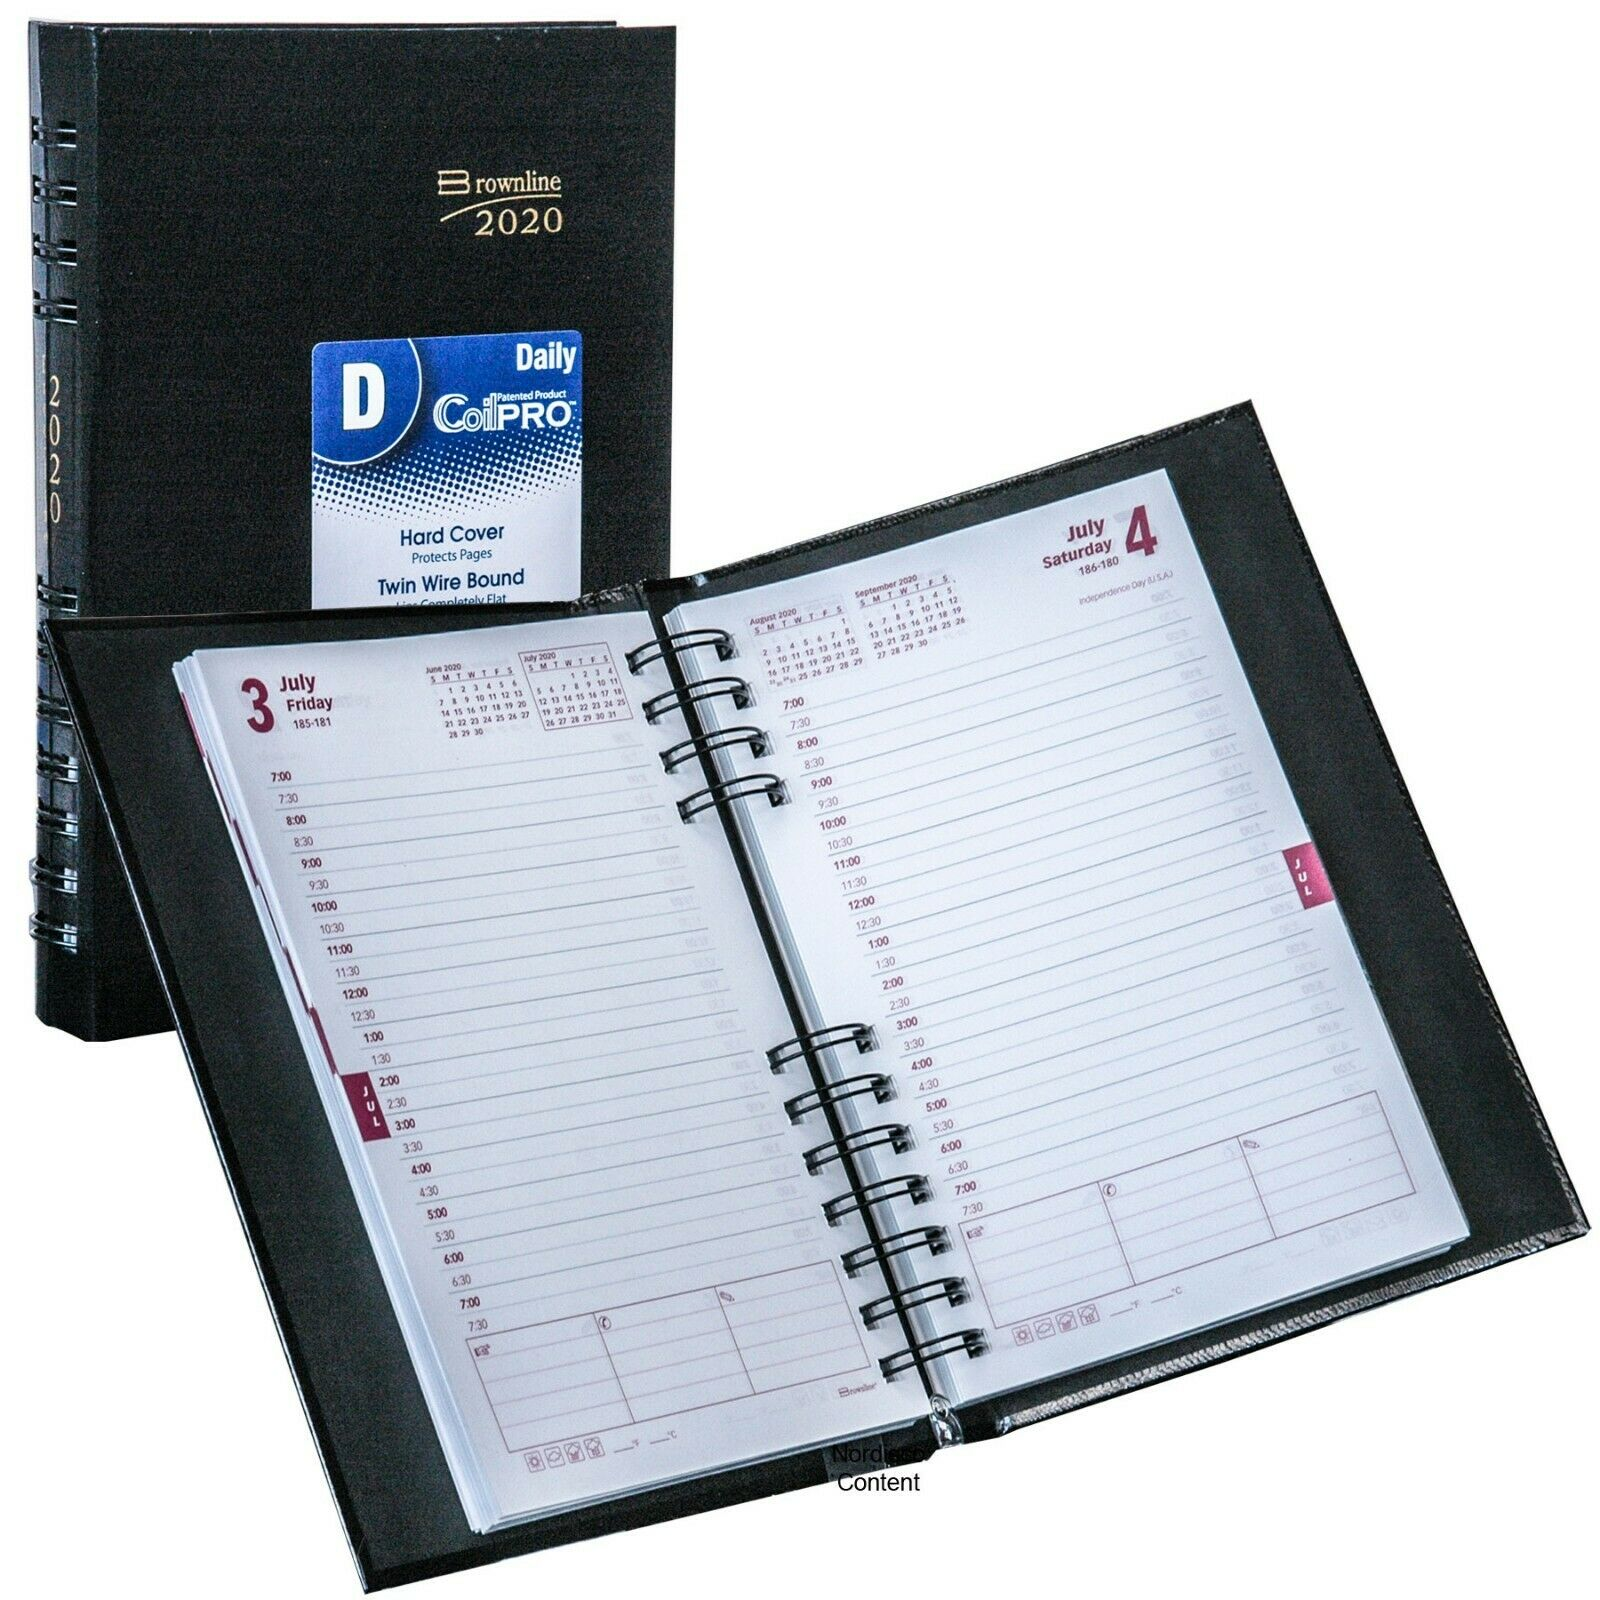 2020 Brownline CB634C.BLK CoilPRO Daily Planner, Hard Cover,